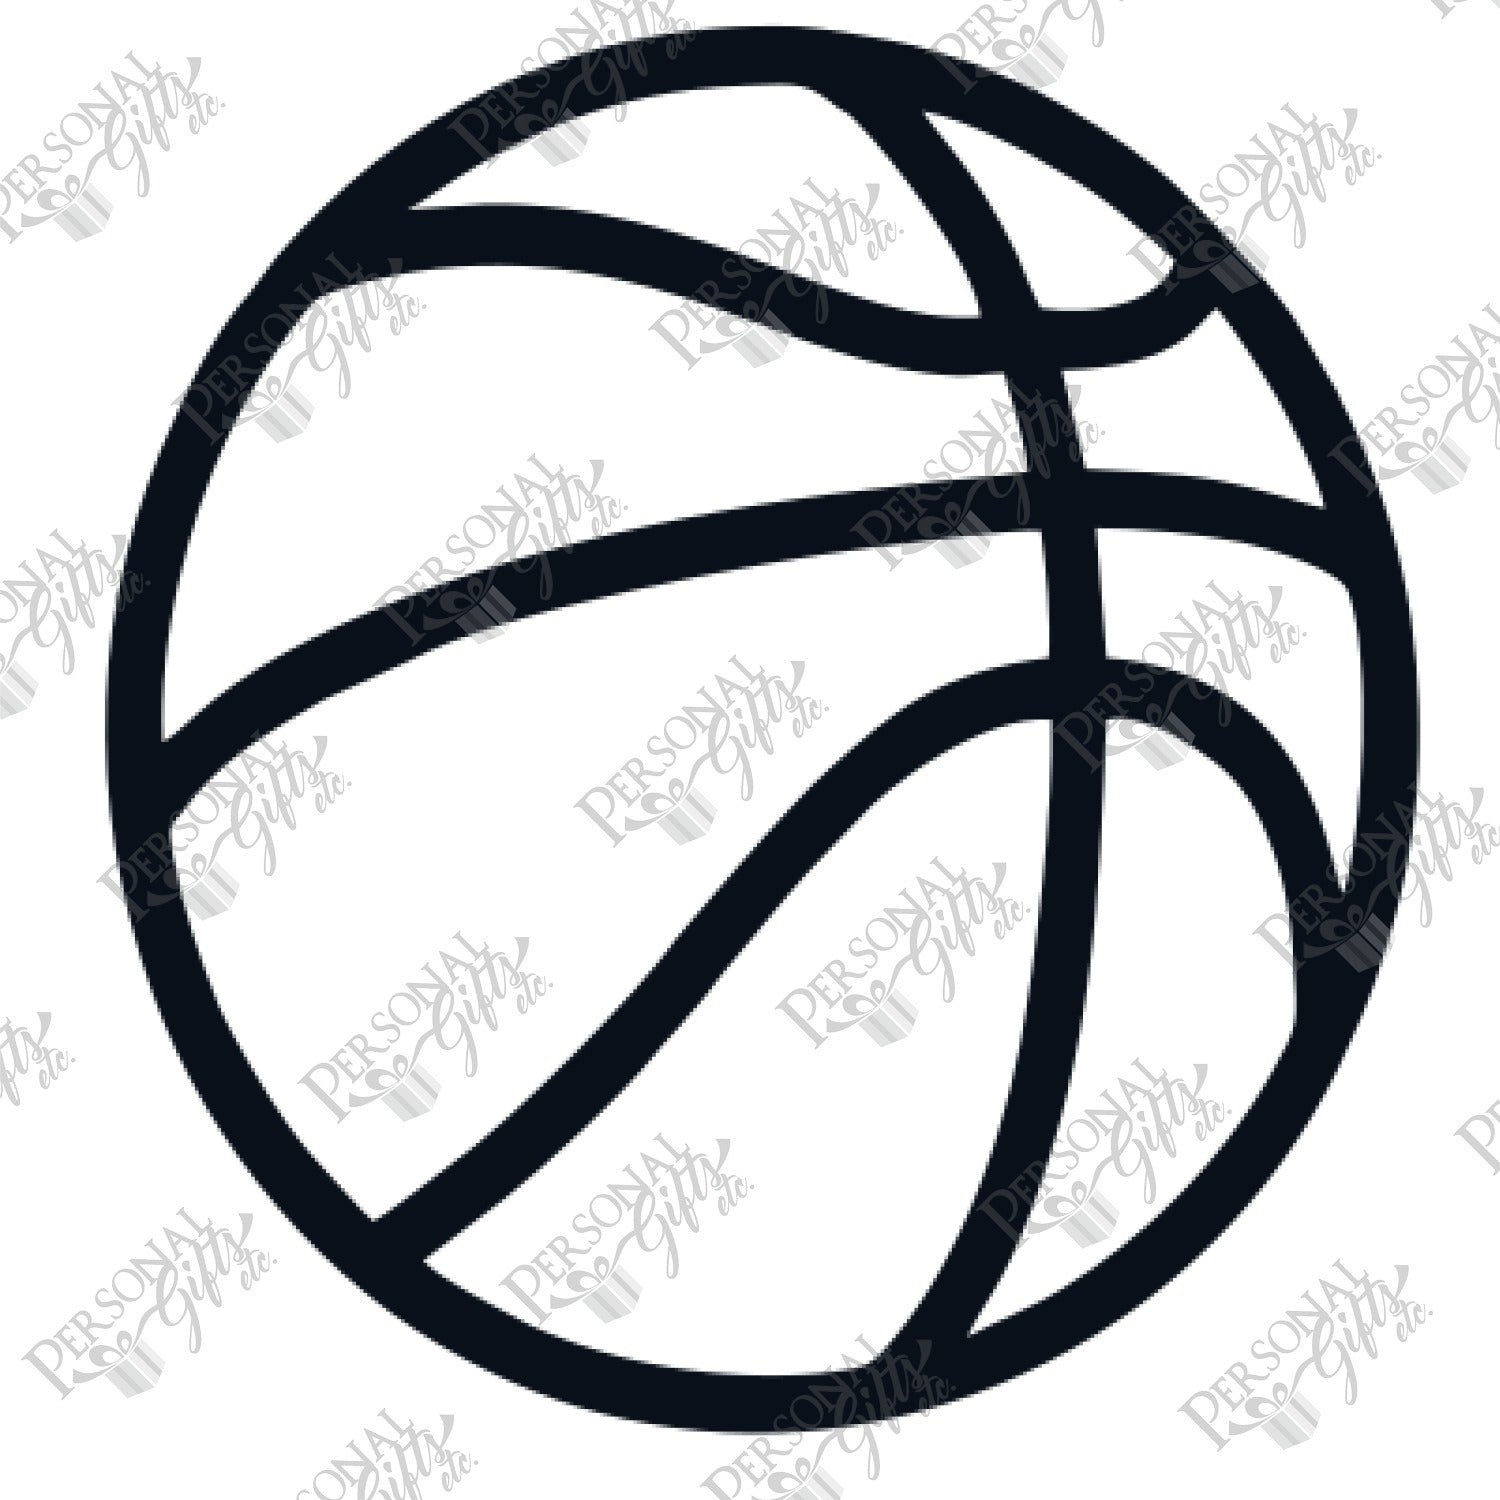 Sub Basketball Outline Personal Gifts Etc Check out our basketball outline selection for the very best in unique or custom, handmade pieces from our shops. sub basketball outline